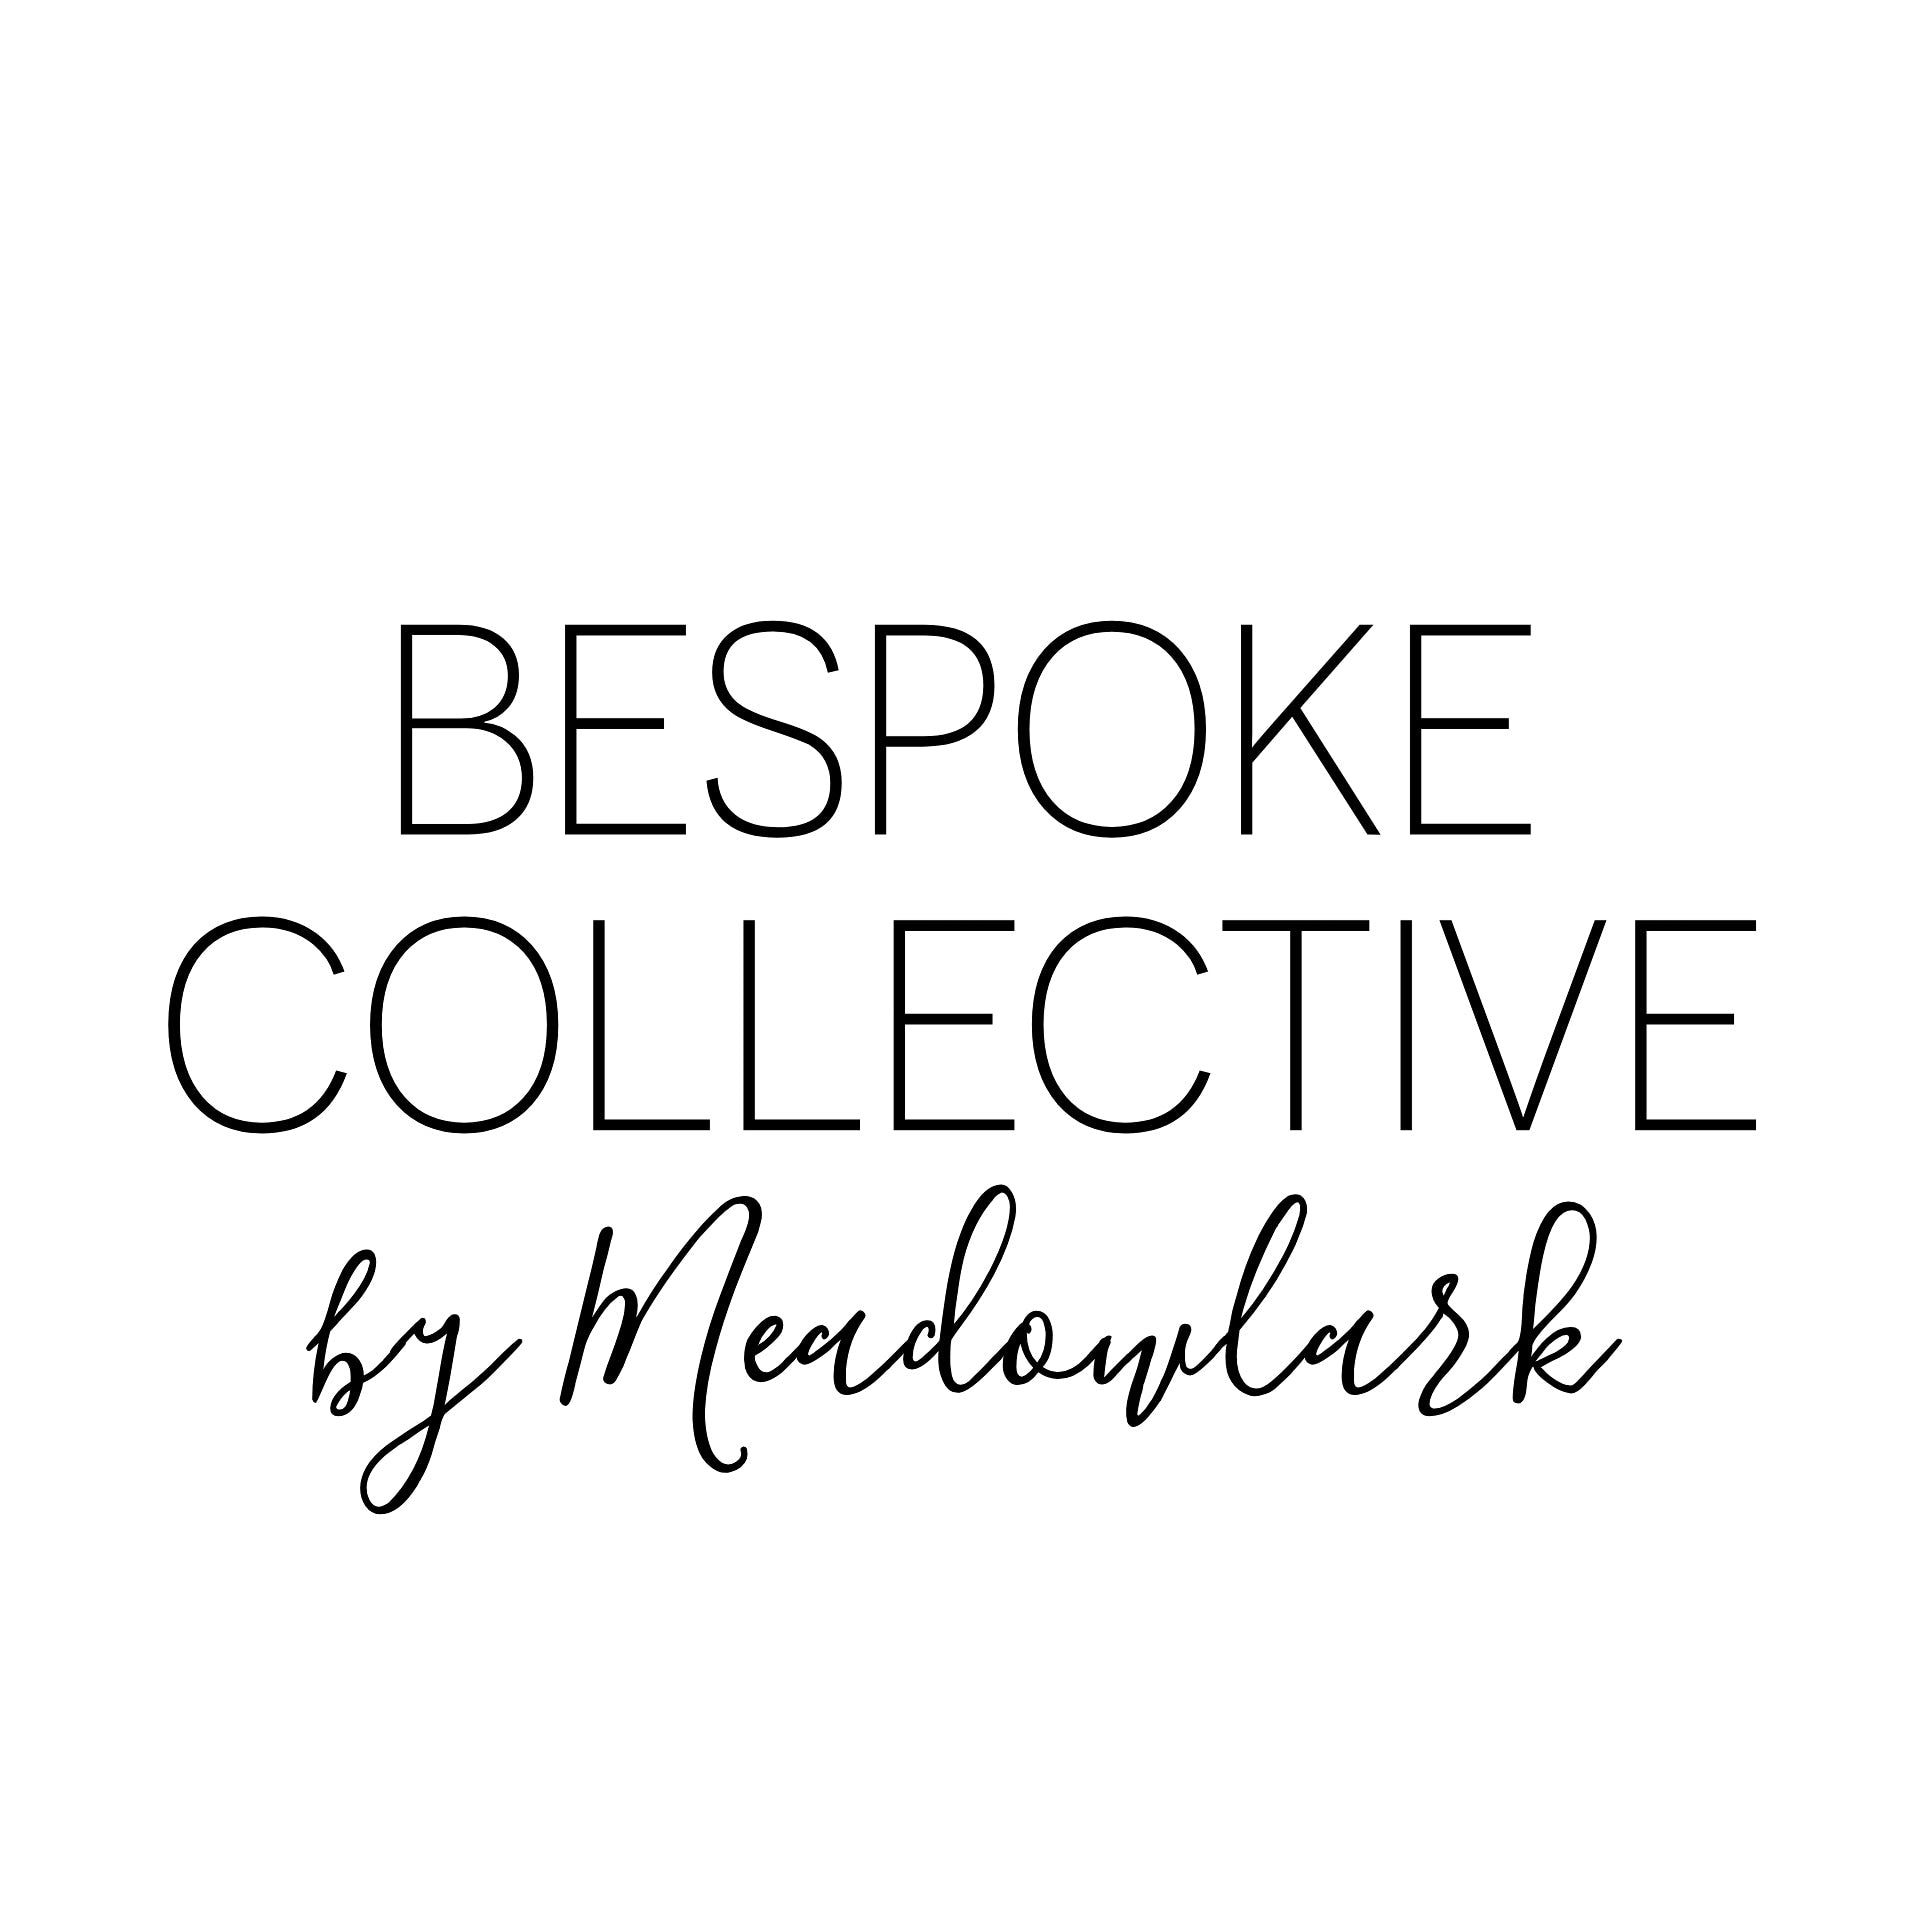 bespoke collective